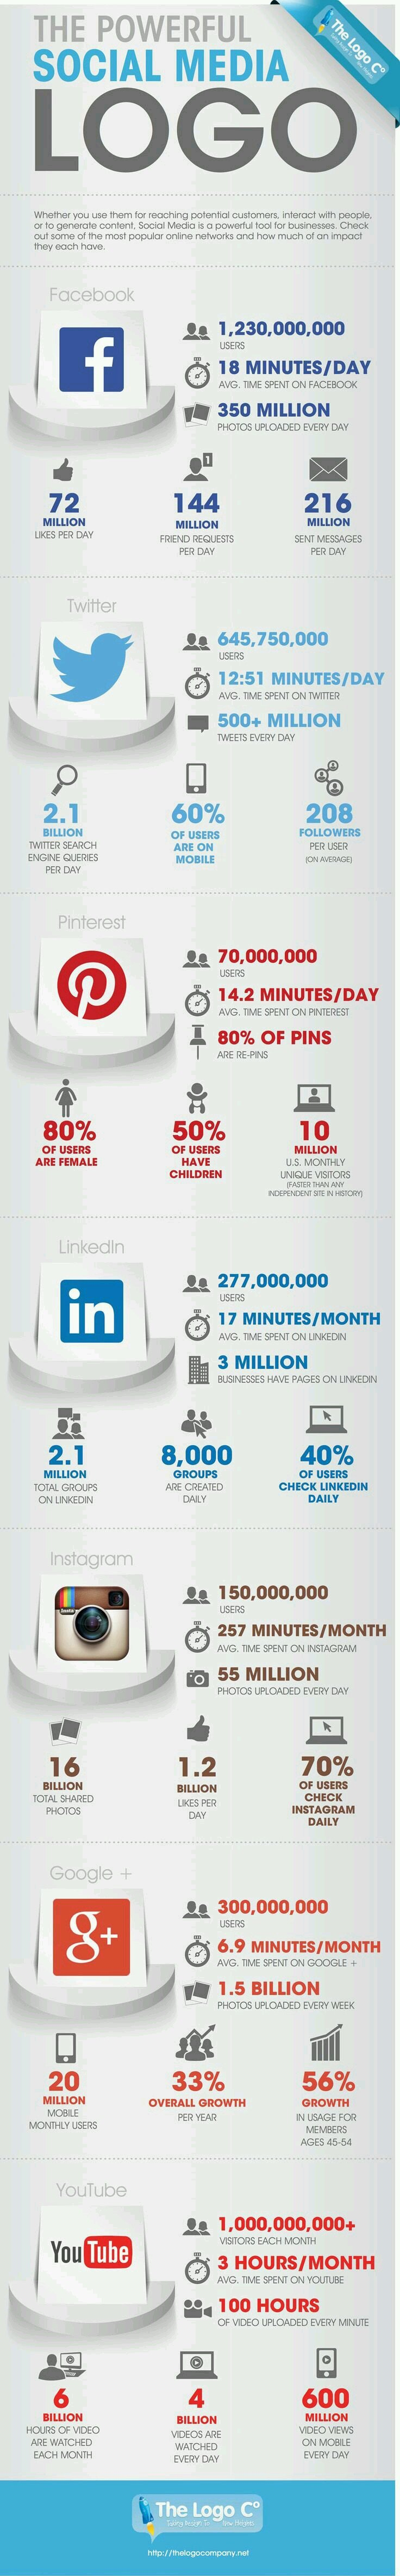 The powerful social media logo #Infographic